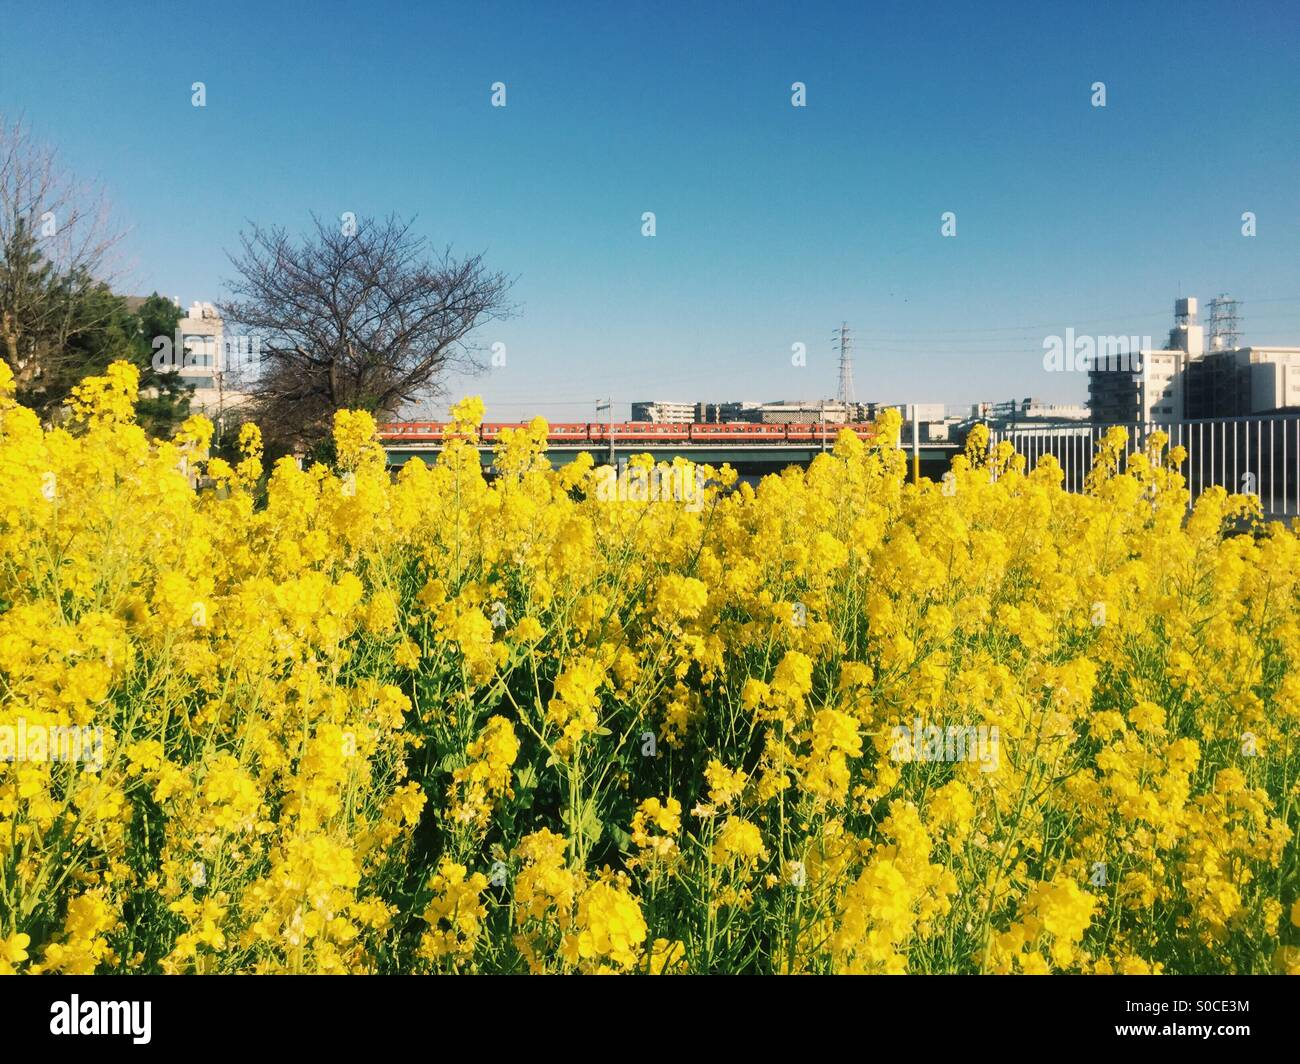 Vibrant yellow field mustard on foreground with red Keikyu train and blue sky in background, taken at Tsurumi Ward - Stock Image